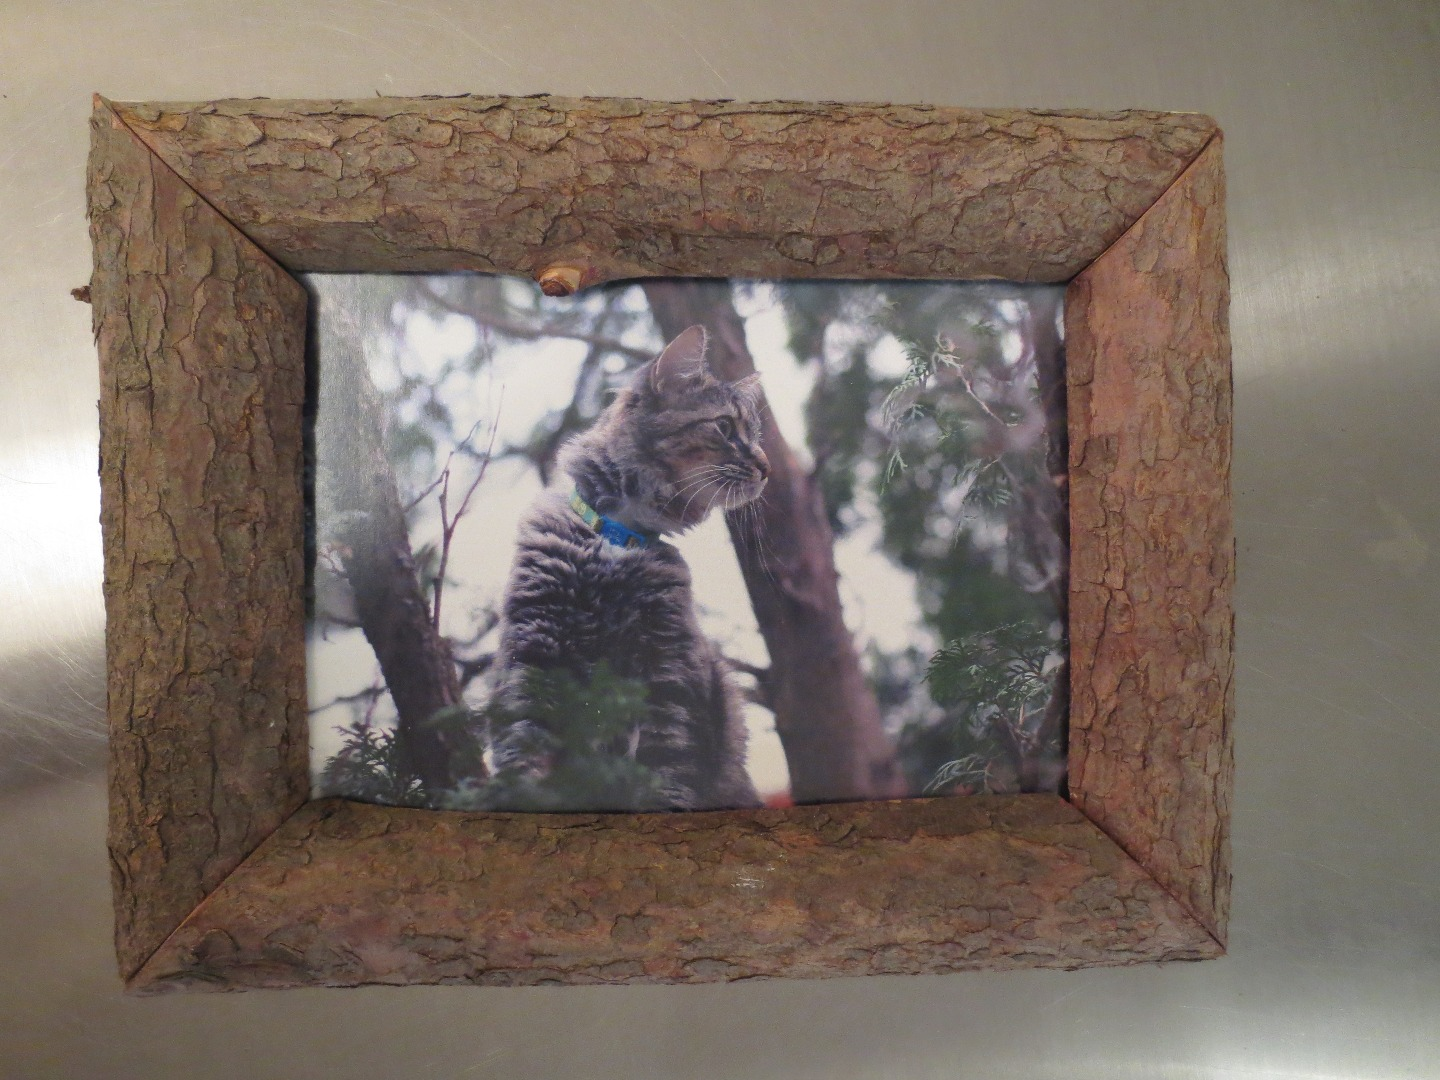 Picture of Assemble Your Nature Frame, Hang on Wall.